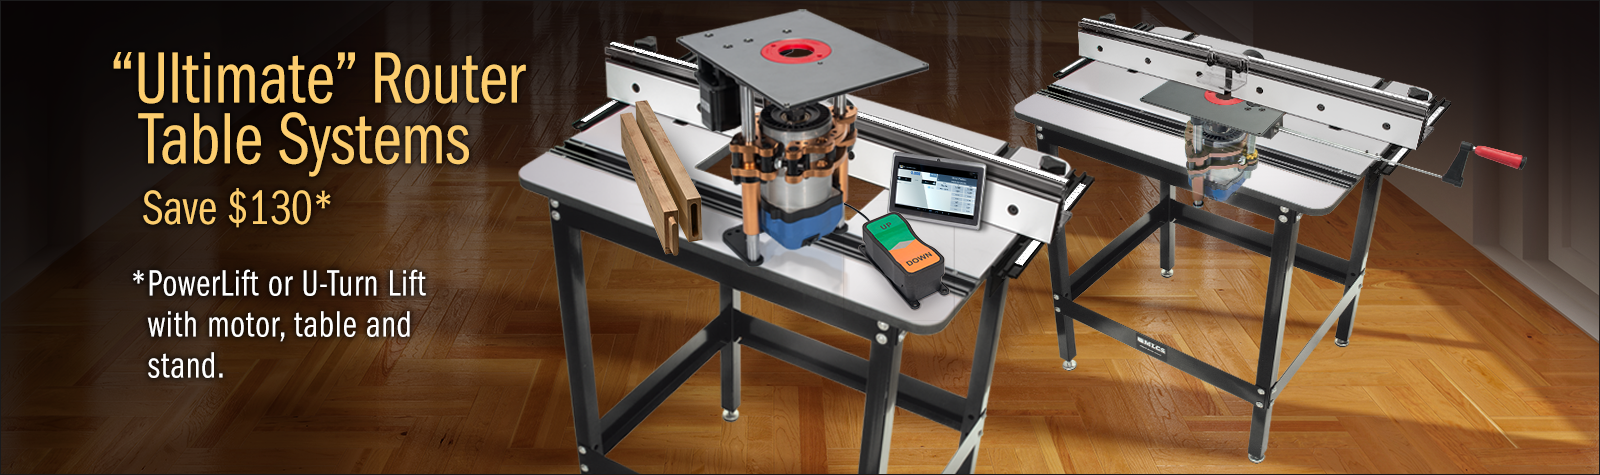 ULTIMATE Router Table Systems--Save Up to $130